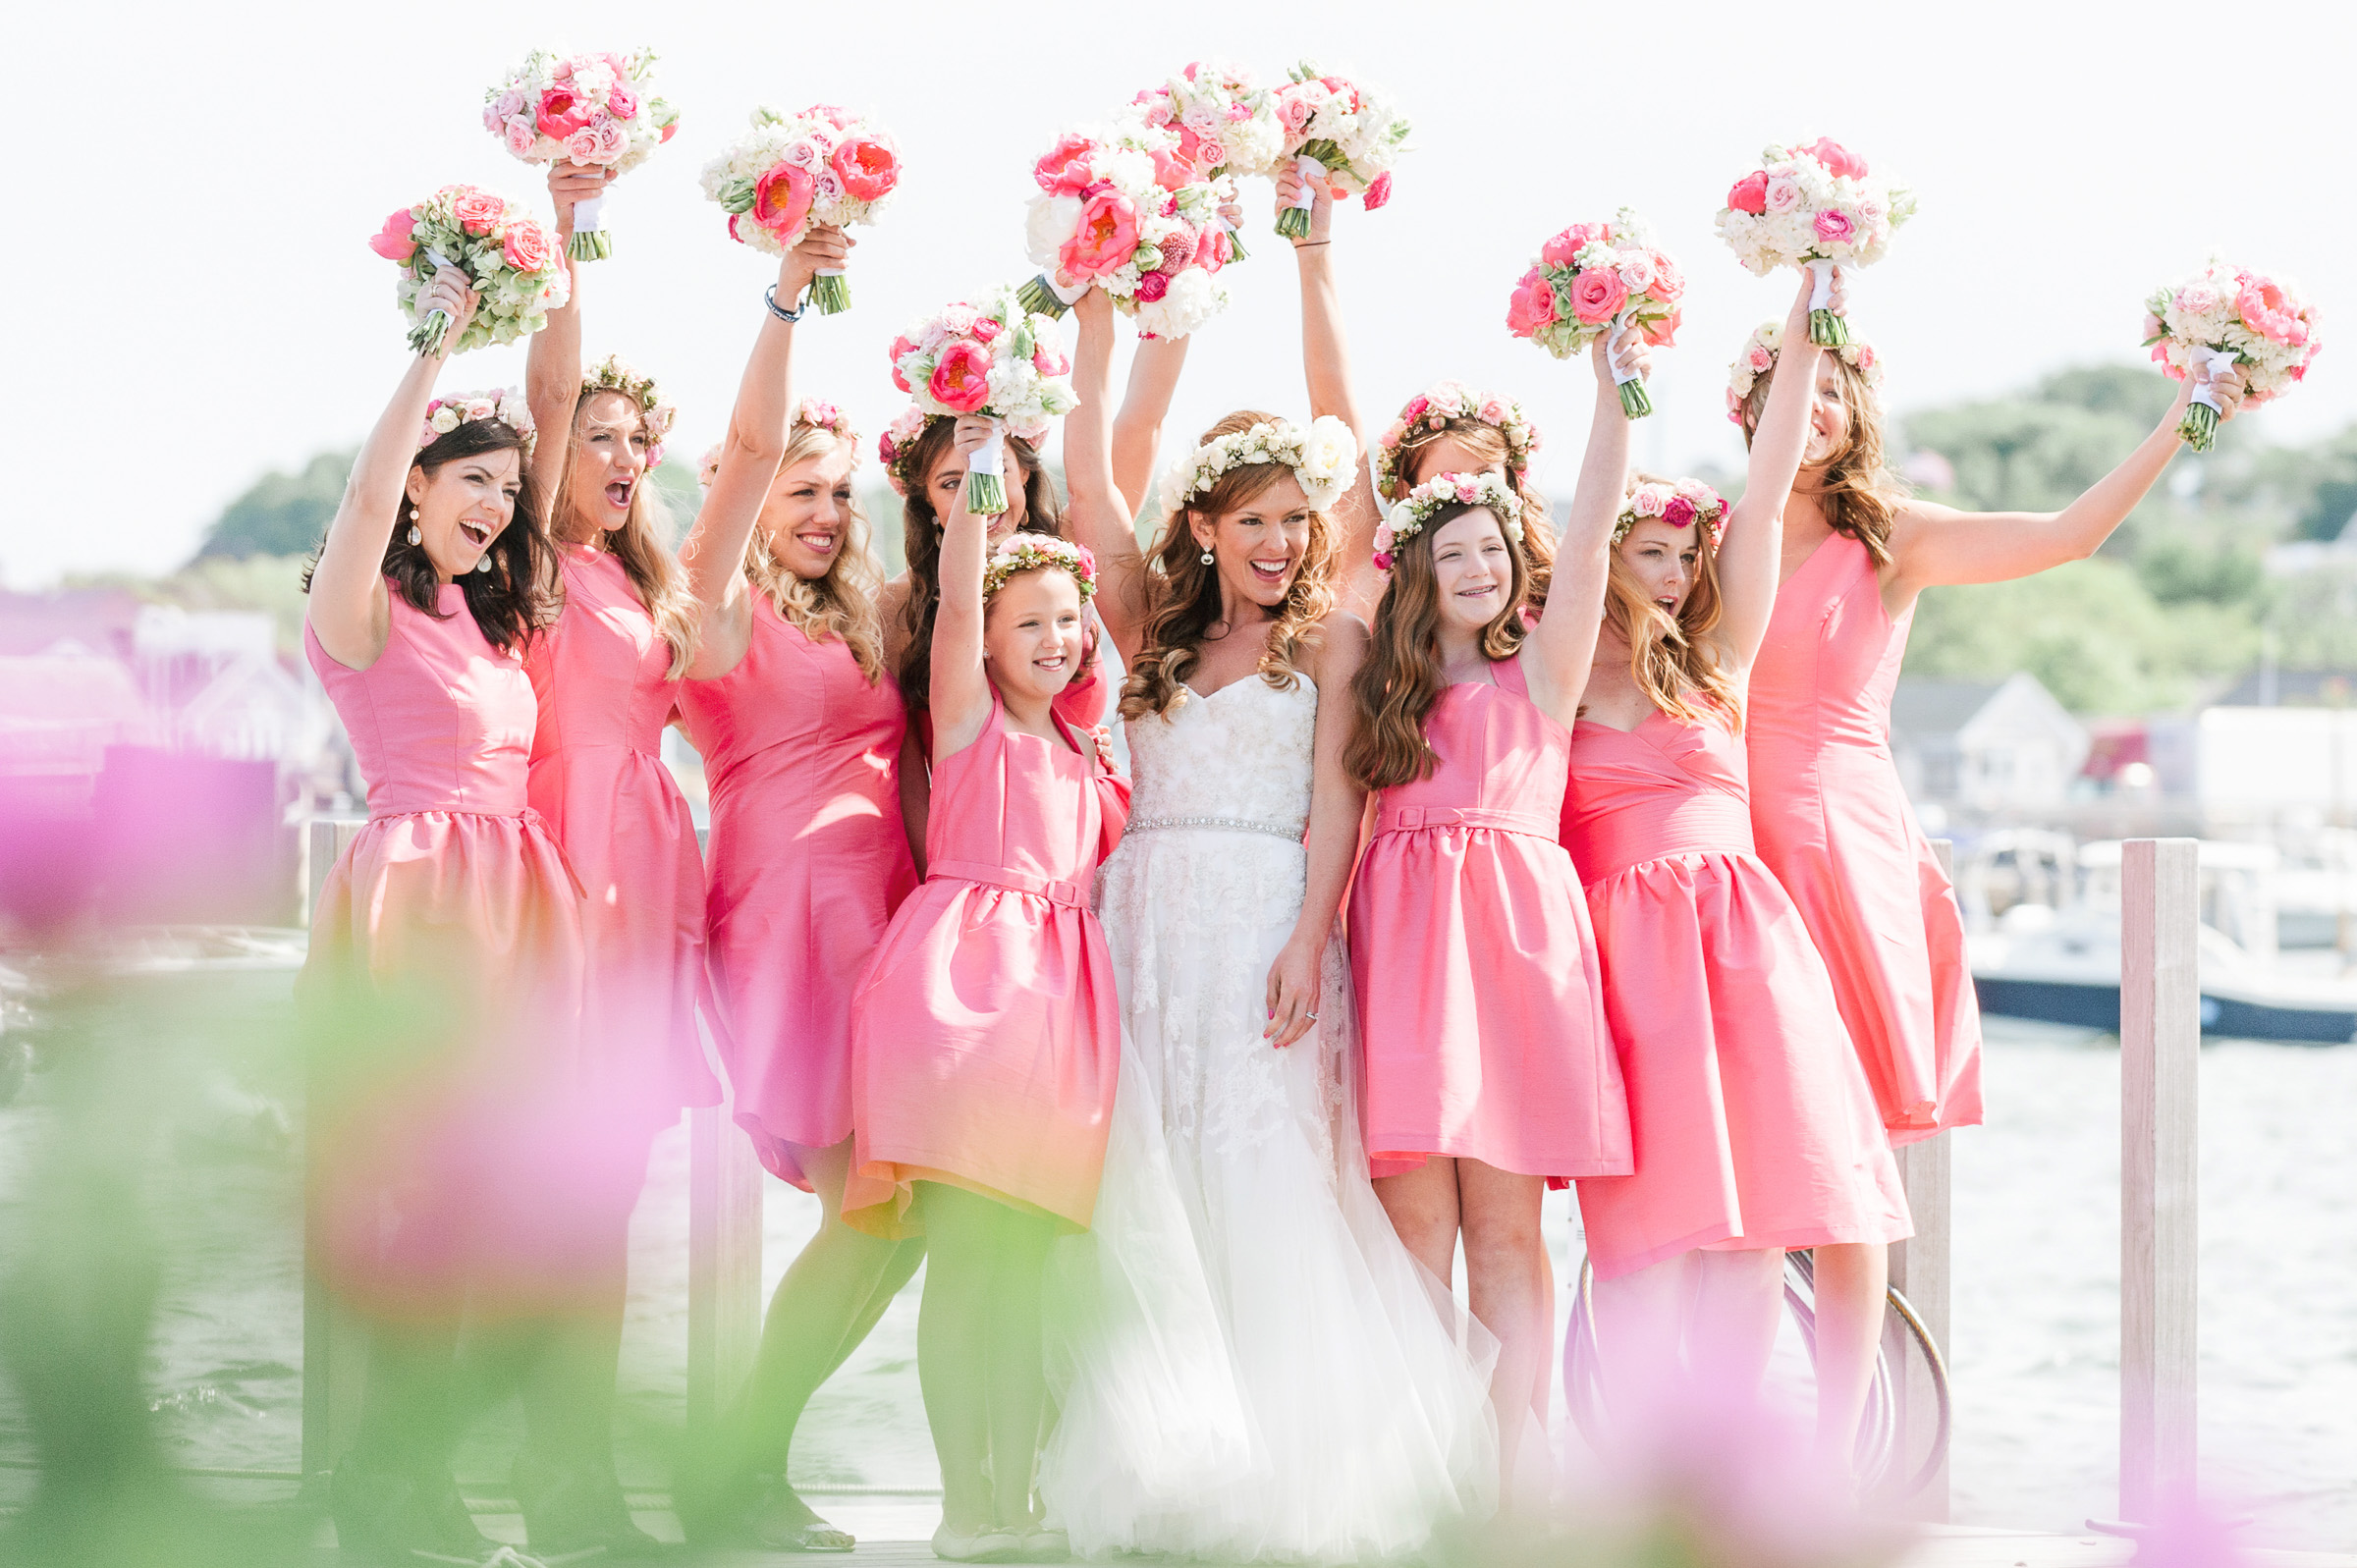 bouquets-in-the-air-for-bride-with-bridesmaids-and-flower-girls-zofia-co-photography